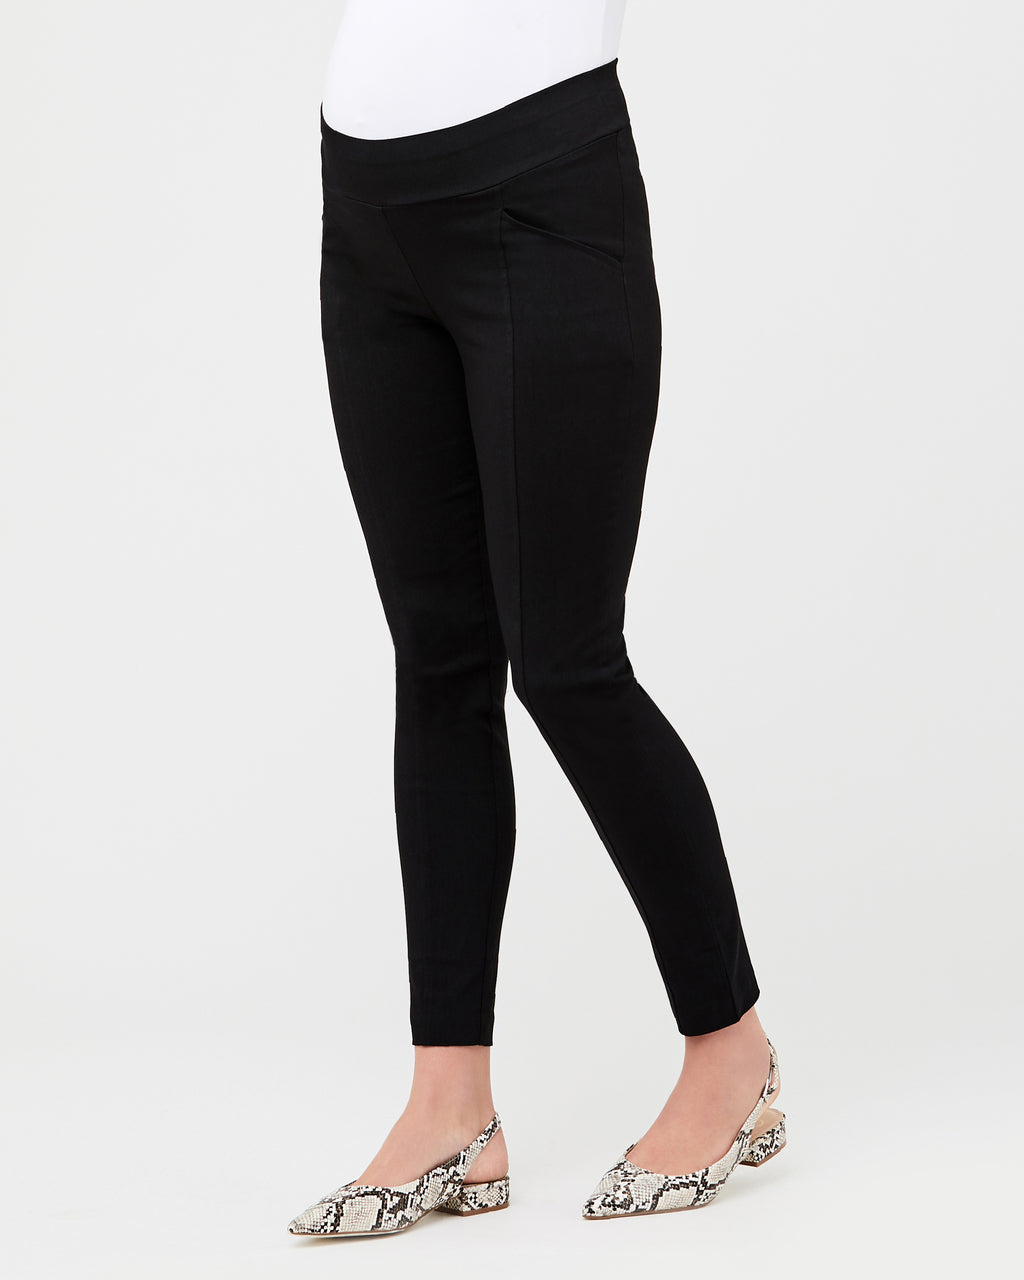 Slim Leg Pocket Pant - Nursing & Maternity Clothes